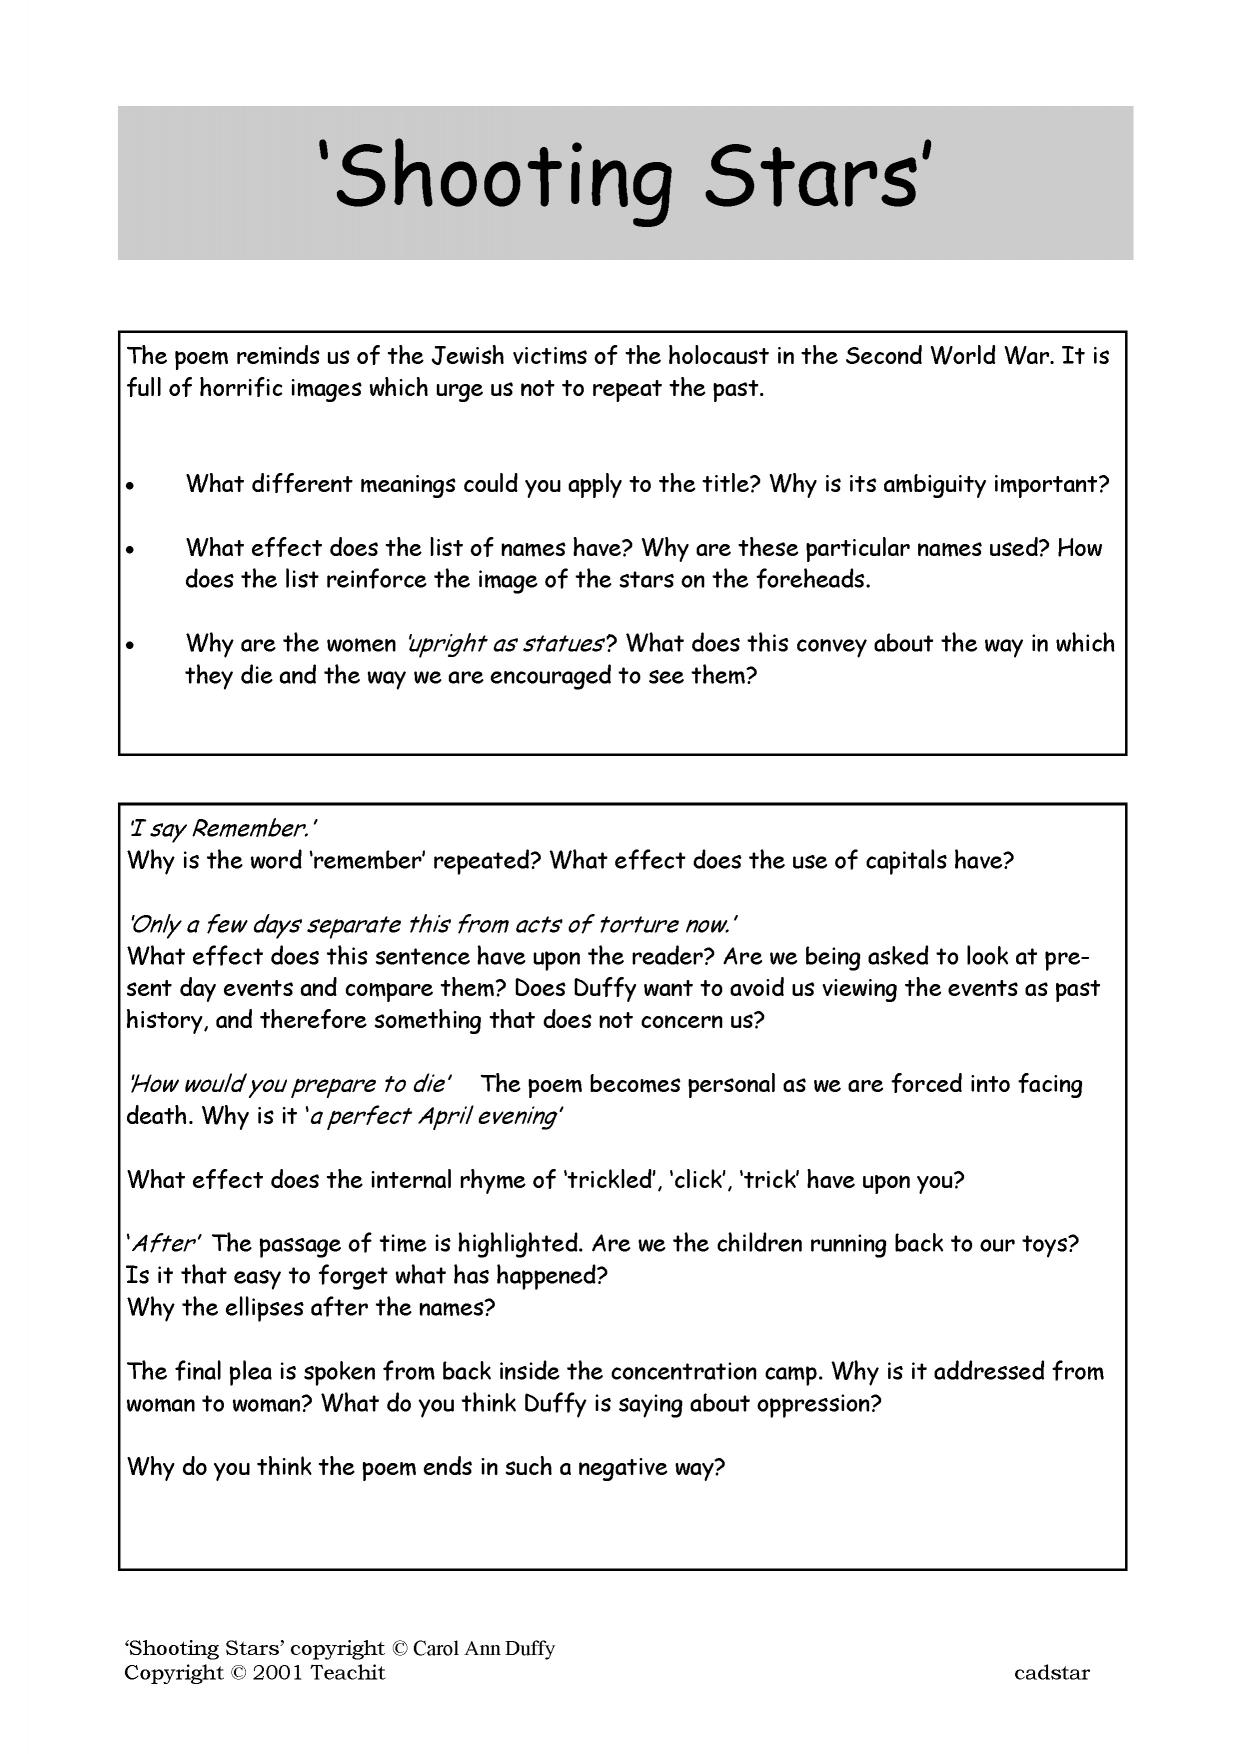 shooting stars essay We provide excellent essay writing service 24/7 shooting stars poem essay your essay's body paragraphs should include topic sentences followed by an explanation of.